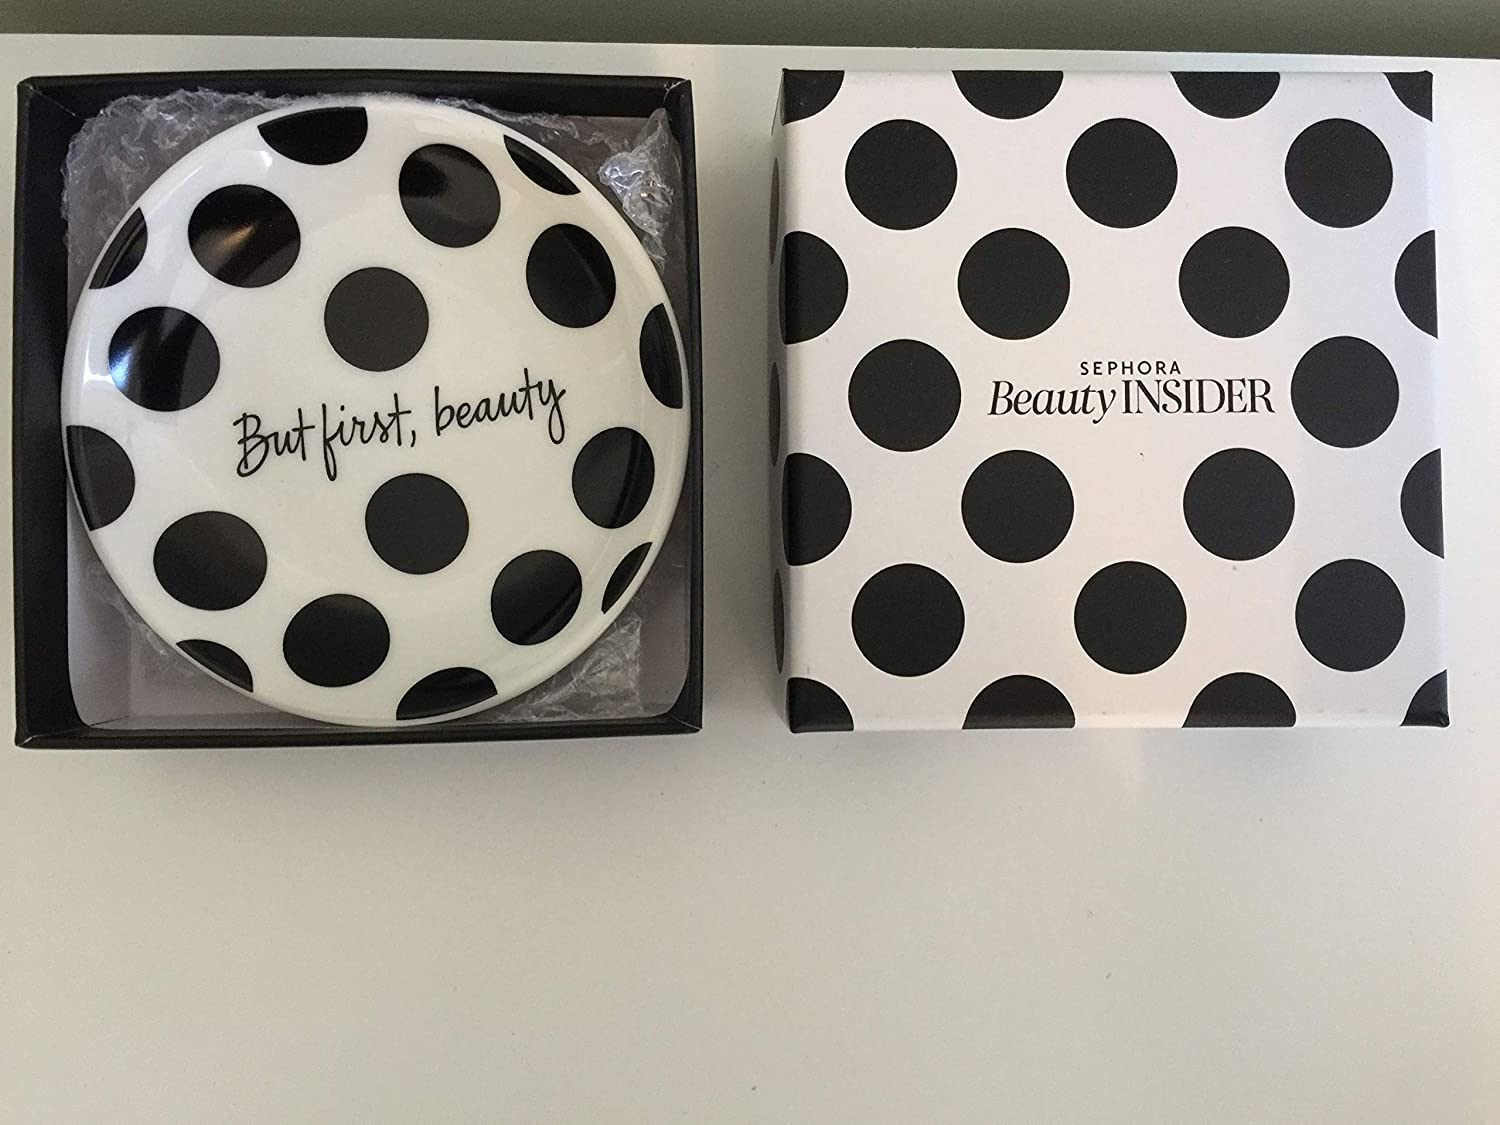 Sephora Beauty Inside Catchall Bandeja, But First, Beauty Limited Edition: Amazon.es: Hogar